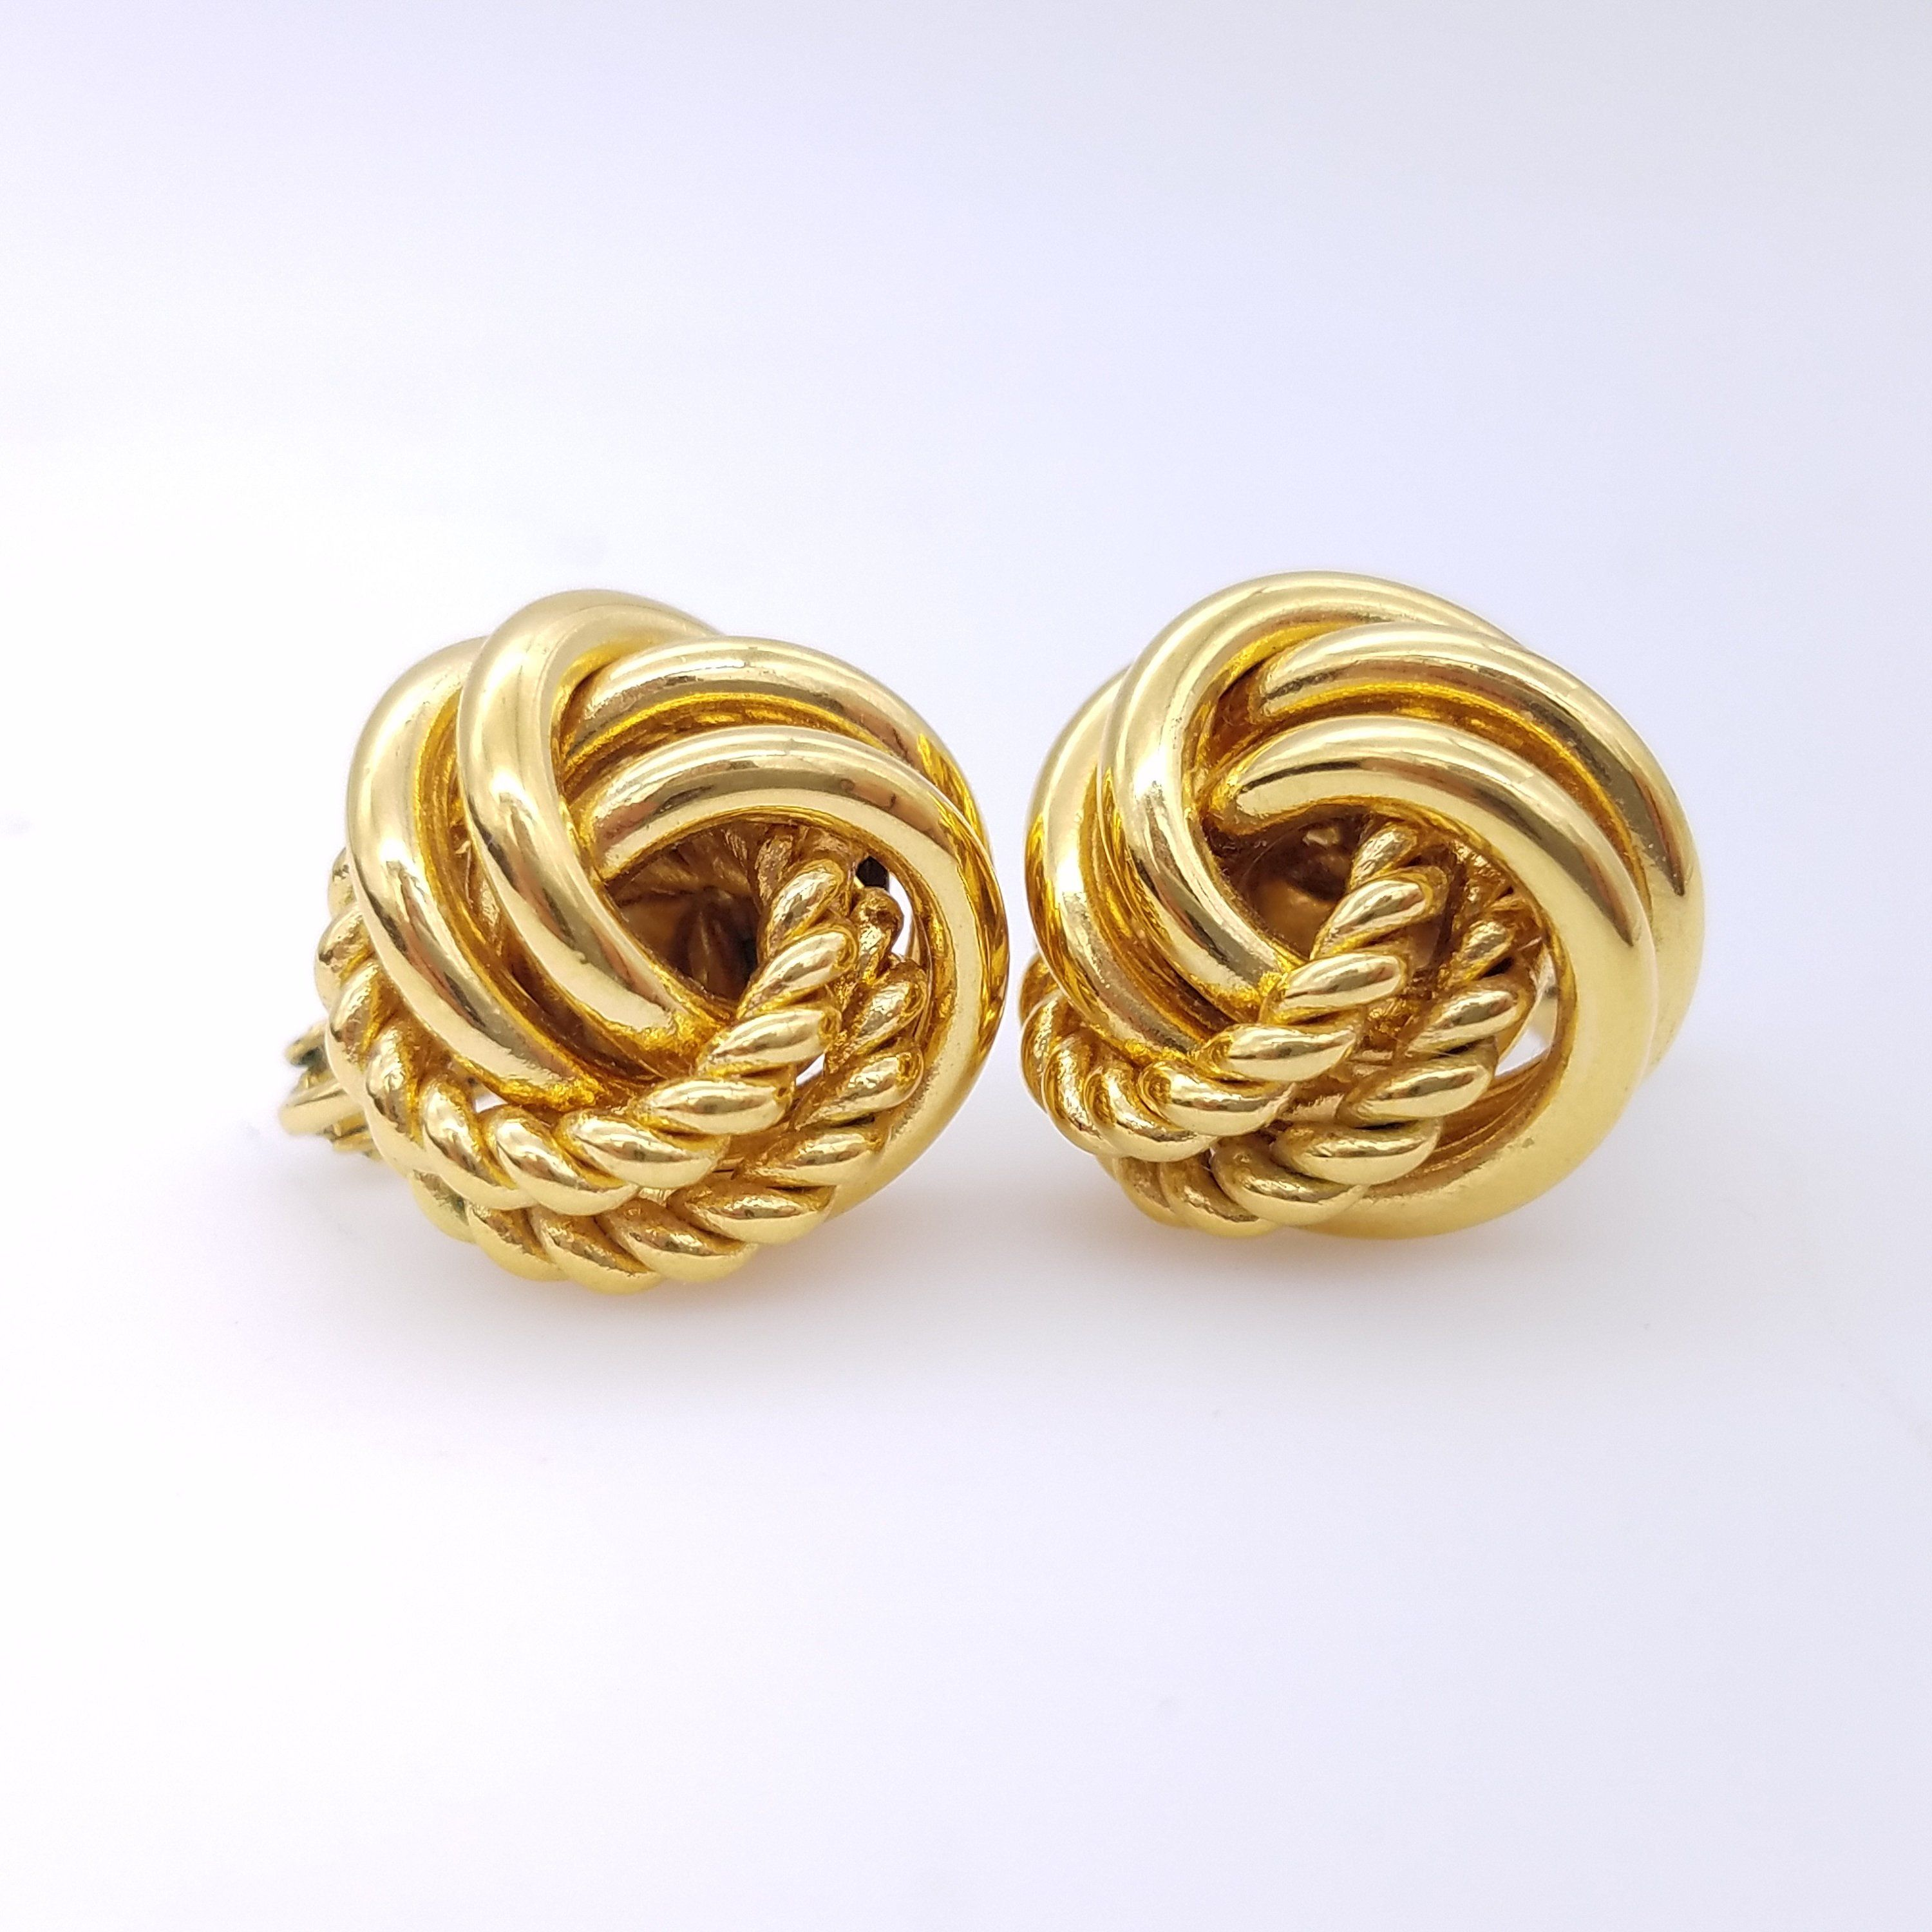 34b0d931e Vintage Signed Napier Gold-Tone Rope Knot Earrings With Screw/Clip Combo  Clasp by ThingsGrandmaKept1 on Etsy #napier #napierjewelry #clipearrings ...